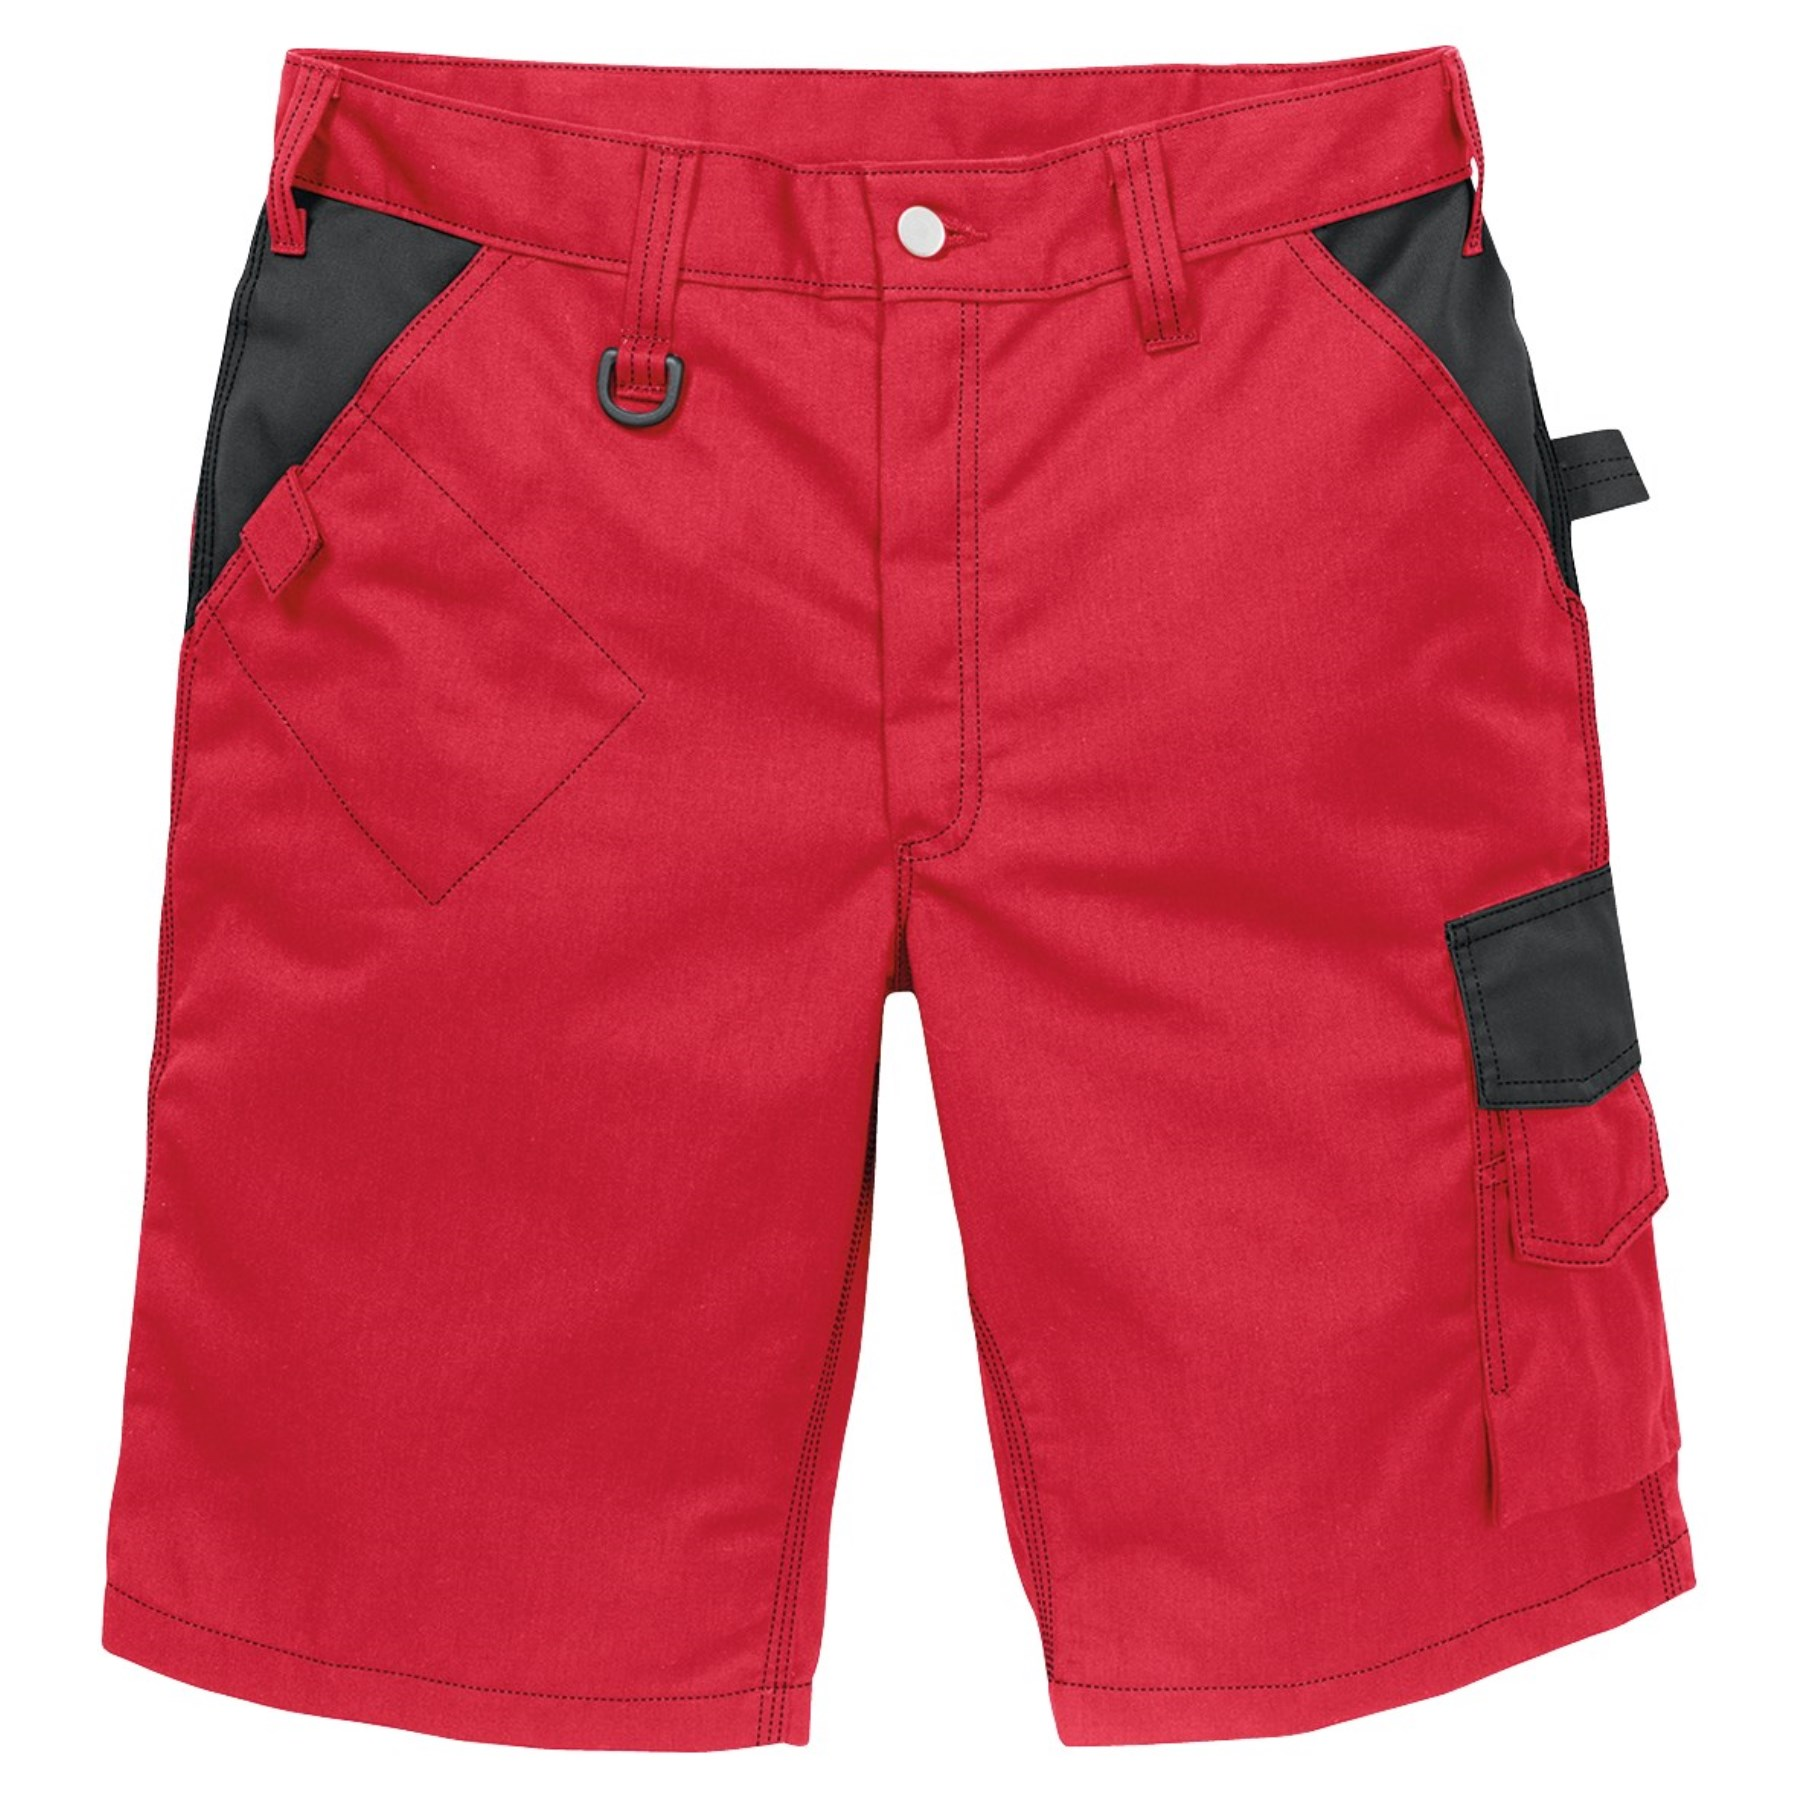 1223472 - Shorts Icon Cool 114105